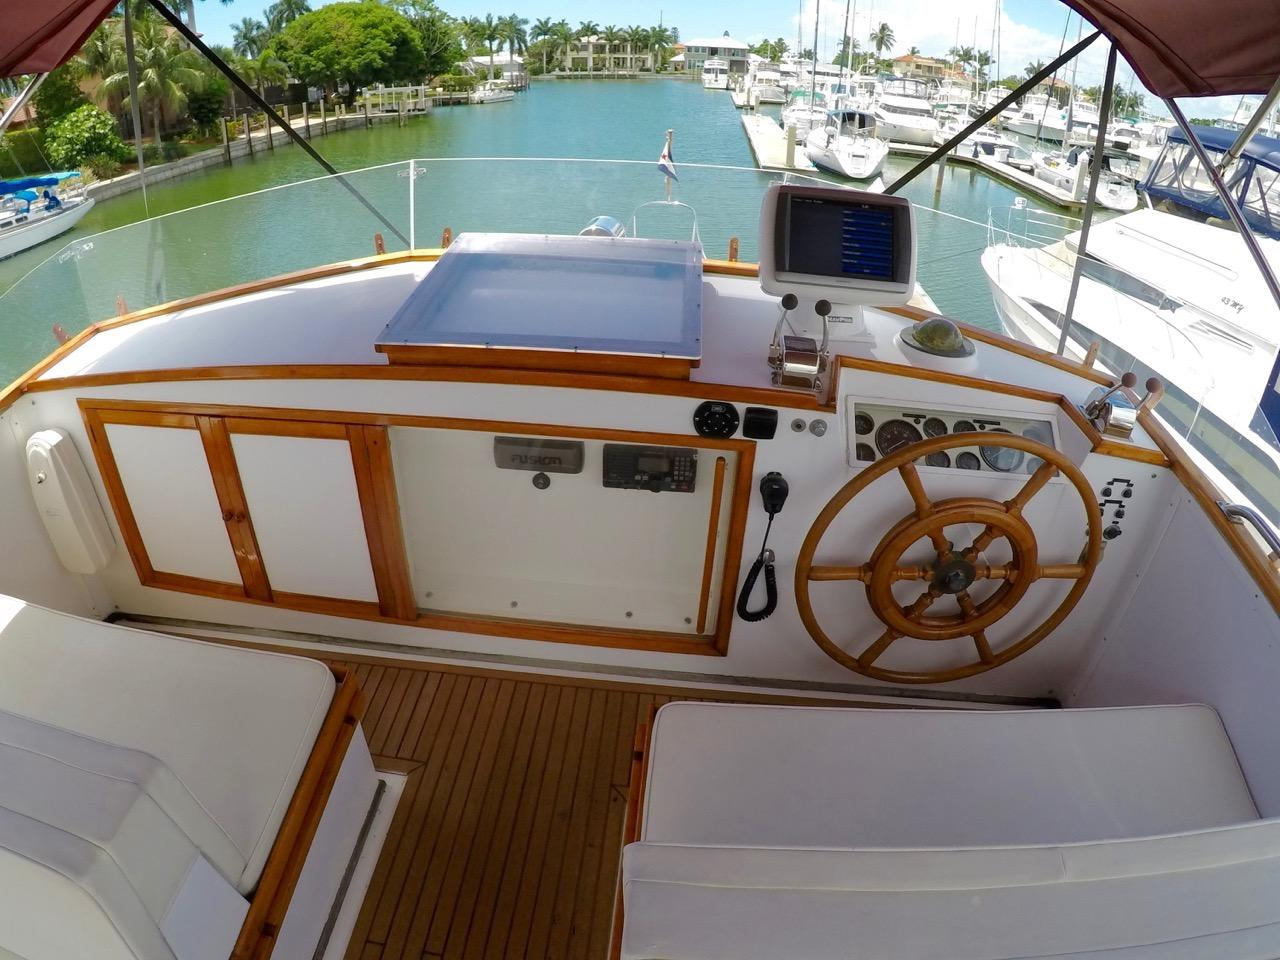 antithesis yacht marco island On saturday, january 28, 2017, i attended a party in marco island, florida for the world craniofacial foundation on the antithesis yacht here is a link that shows pictures and tells the story of the antithesis:.